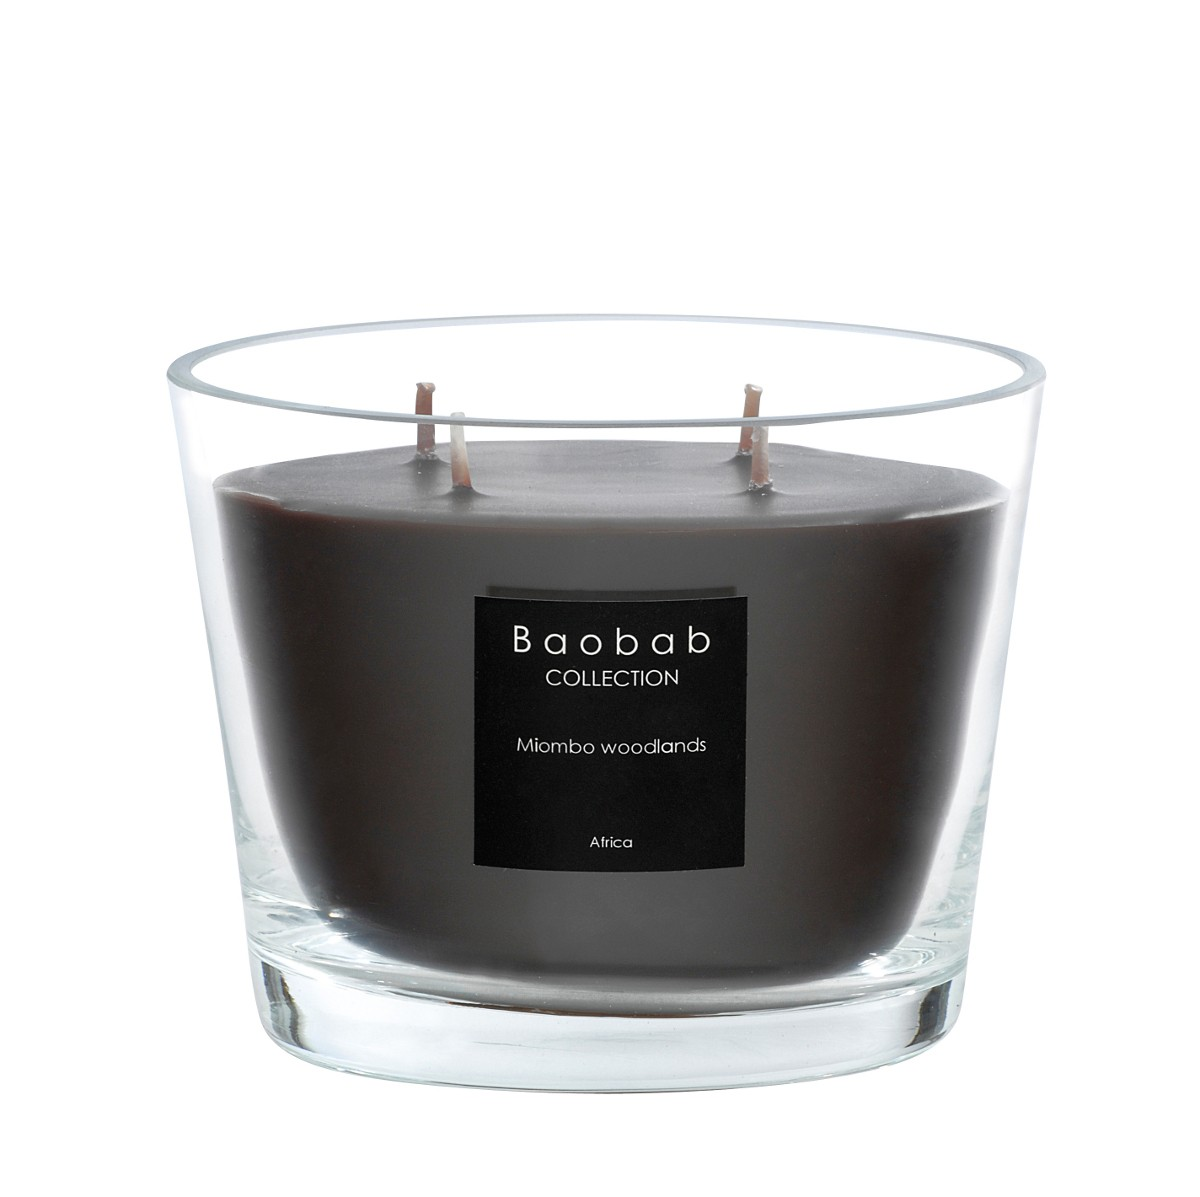 Bougie Baobab Paris Bougie Miombo Woodlands De Baobab Collection